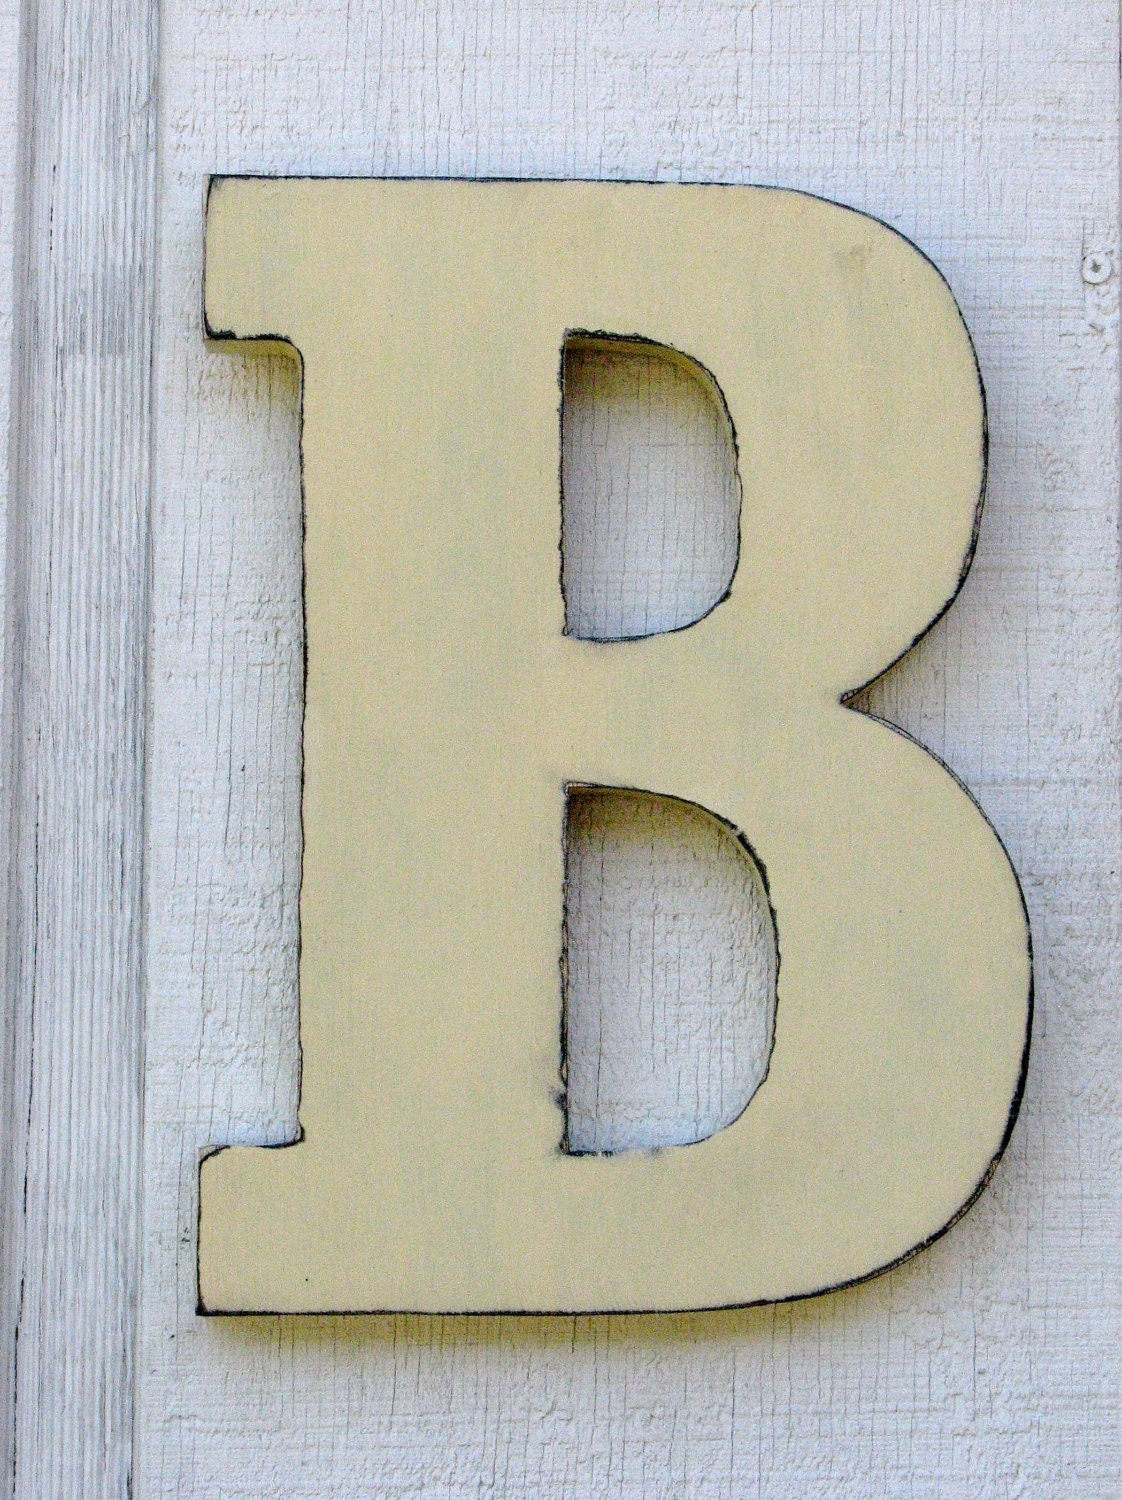 Wooden Letters Rustic Letter B Home Decor Distressed Painted Home Decorators Catalog Best Ideas of Home Decor and Design [homedecoratorscatalog.us]